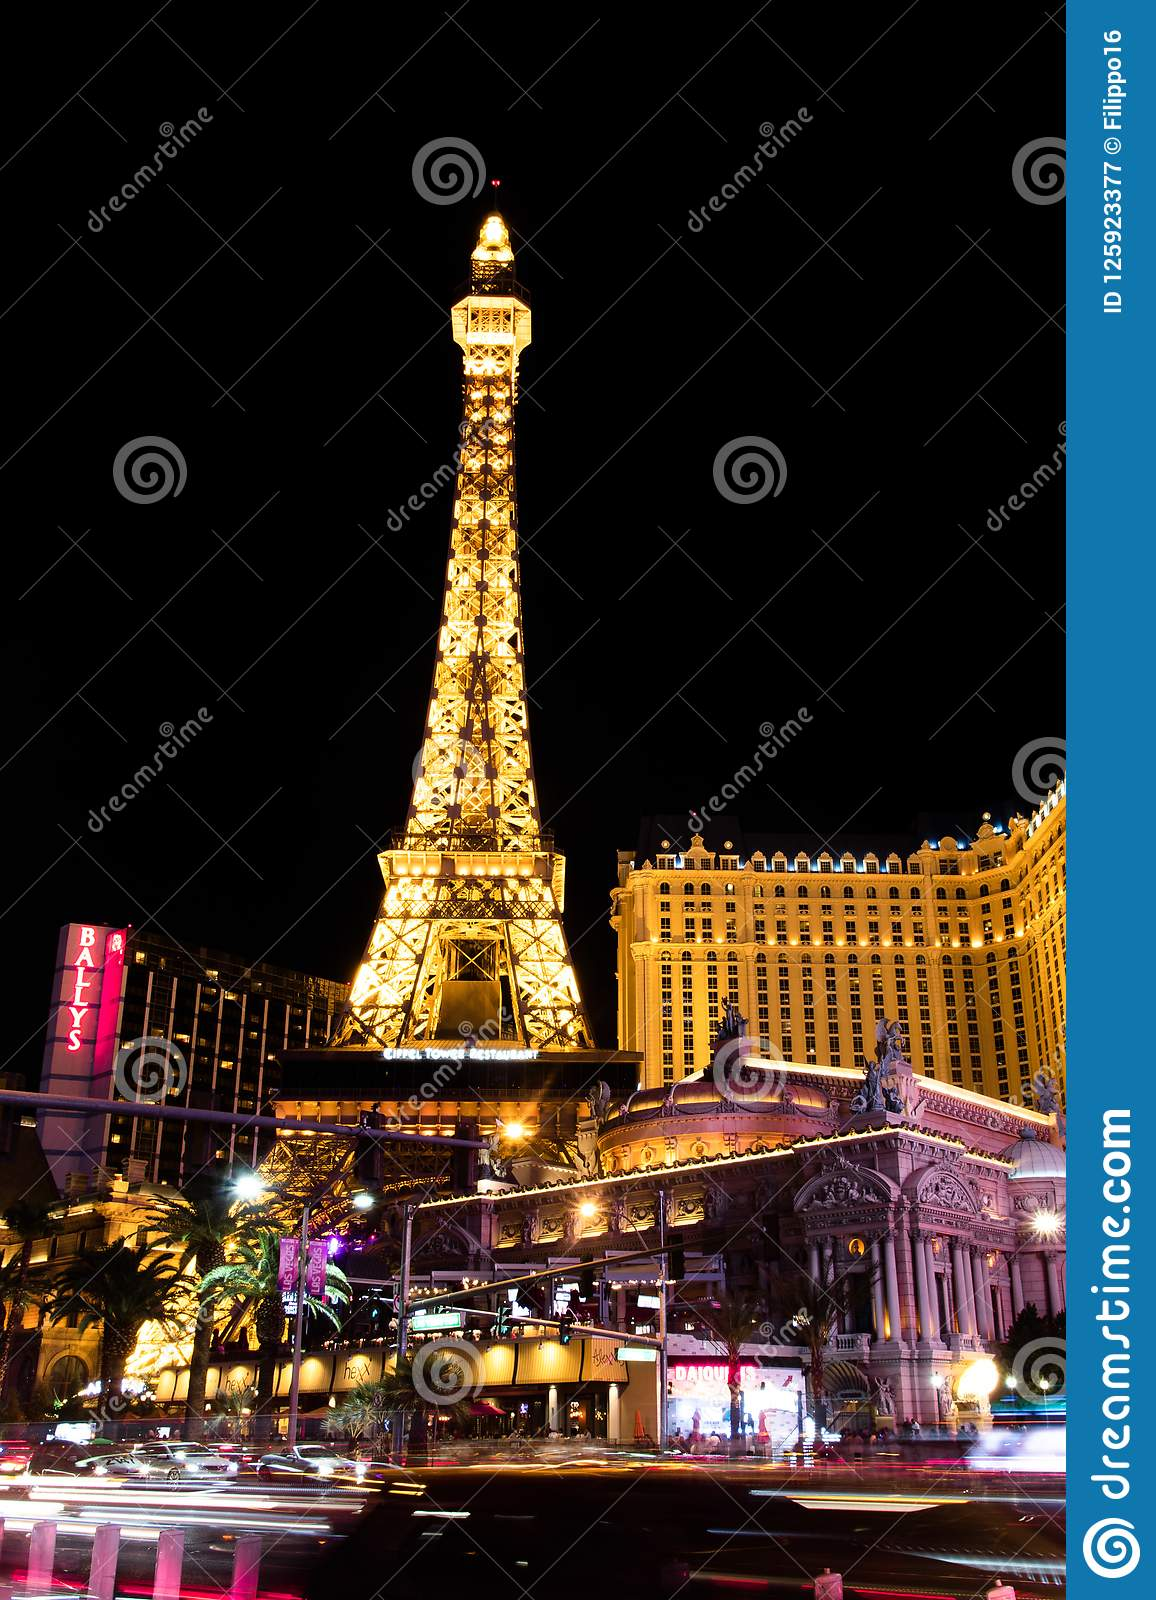 Las Vegas Night View: Las Vegas, NV, USA 09032018: NIGHT View Of The Strip With